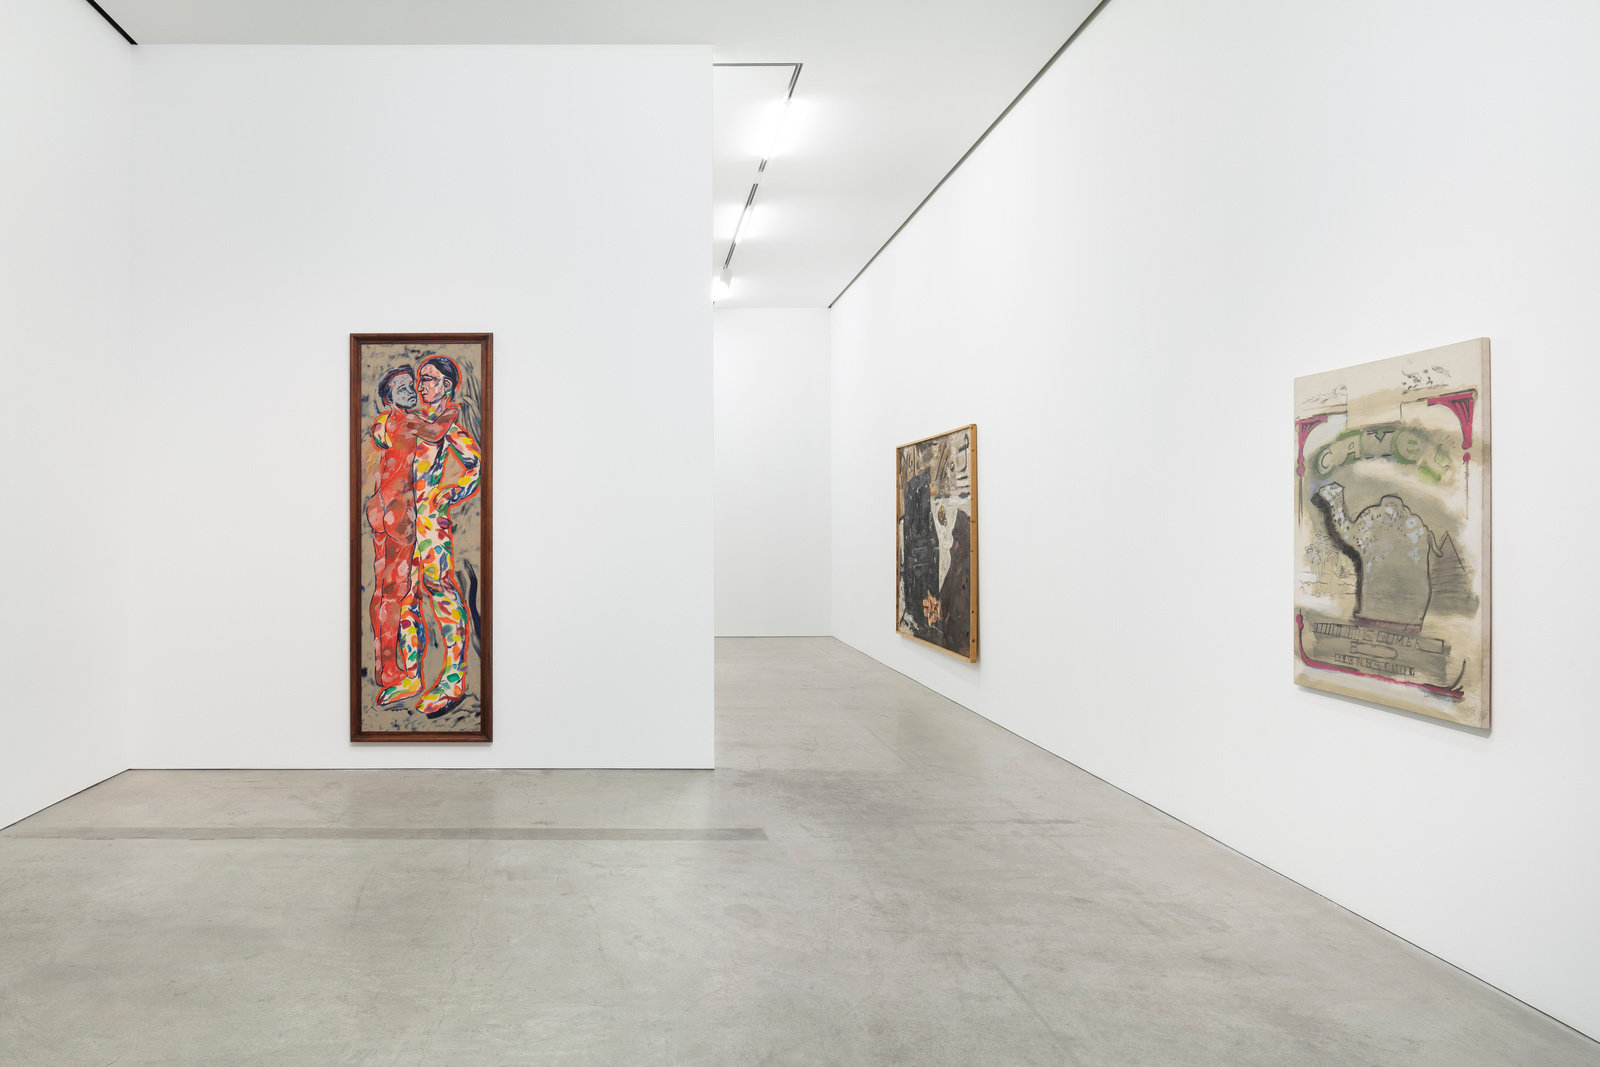 three paintings of different scales hung on the walls. One colorful painting of two figures embracing by RB Kitaj is tall and narrow. The remaining two are more subdued in their palette, by Werner Büttner and Larry Rivers.